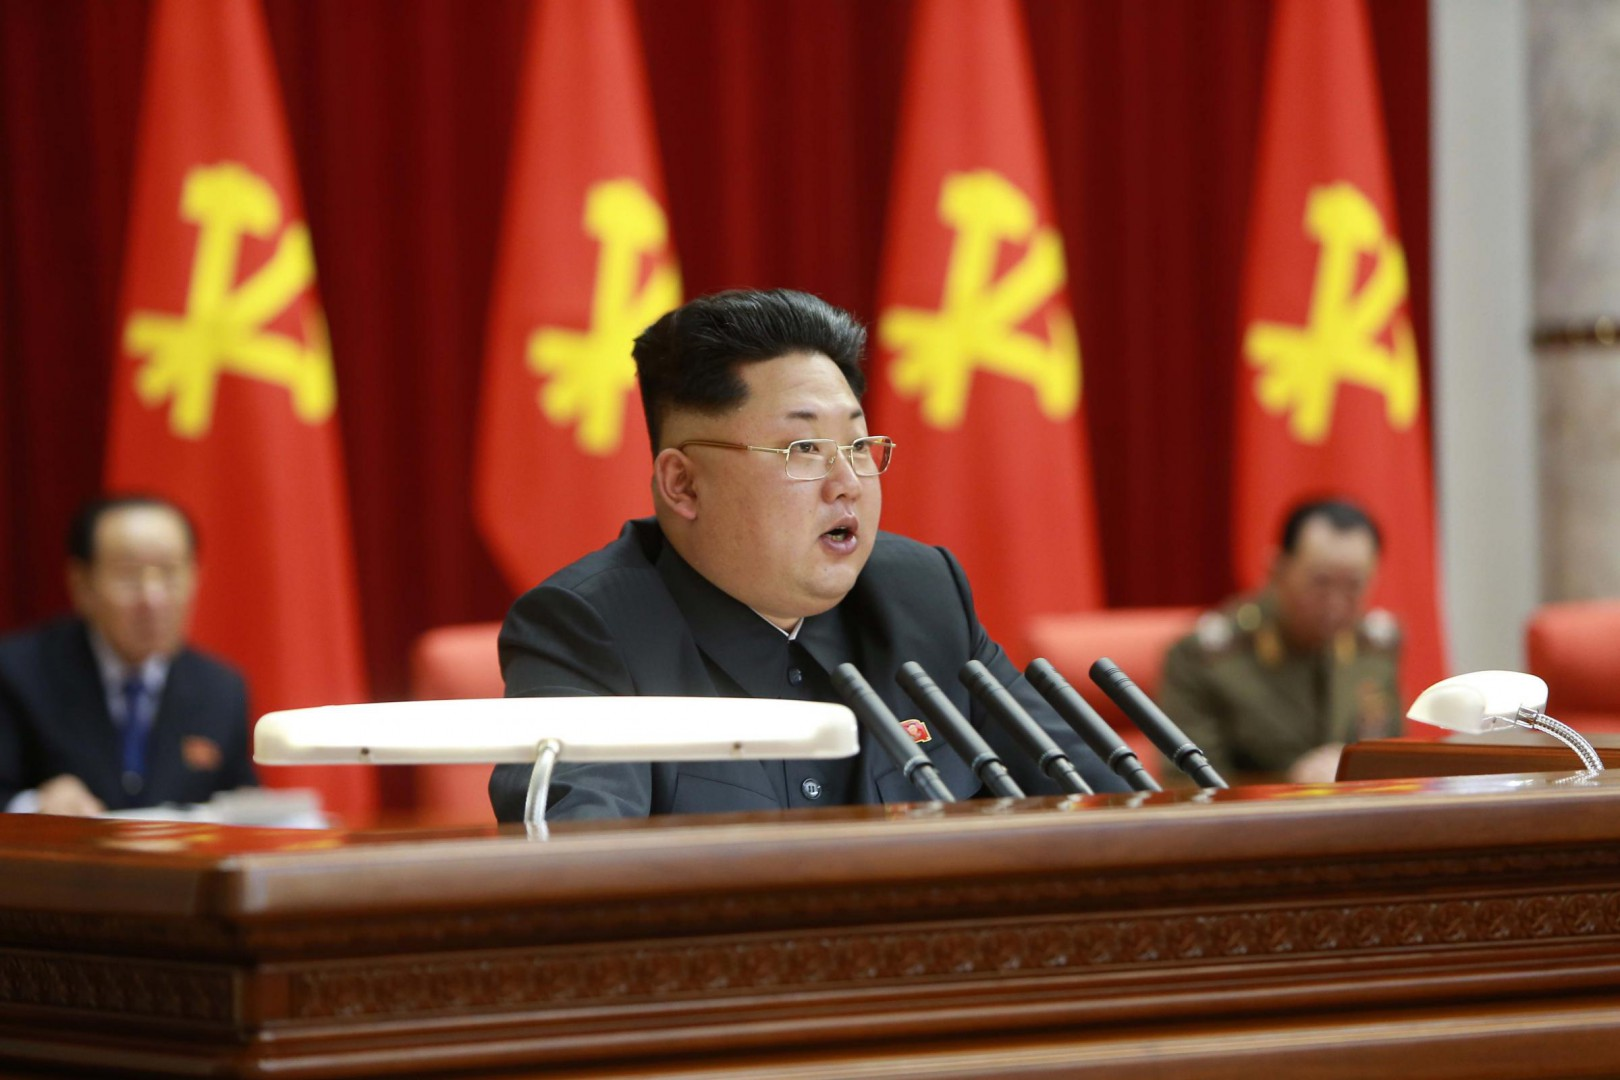 "(150219) -- PYONGYANG, Feb. 19, 2015 (Xinhua) -- Photo provided by Korean Central News Agency (KCNA) on Feb. 19, 2015 shows an enlarged meeting of the Political Bureau of the Central Committee of the Workers' Party of Korea (WPK) taking place in Pyongyang on Wednesday under the guidance of top leader of the Democratic People's Republic of Korea (DPRK) Kim Jong Un. A resolution adopted at the meeting underscored the need to stick to and carry out the behests of late leader Kim Jong Il. The DPRK's top leader Kim Jong Un made a concluding speech at the meeting, in which he emphasized that ""President Kim Il Sung's and Kim Jong Il's behests concerning the problems of food and clothing essential should be carried out before any other behests."" (Xinhua/KCNA) ****Authorized by ytfs****"